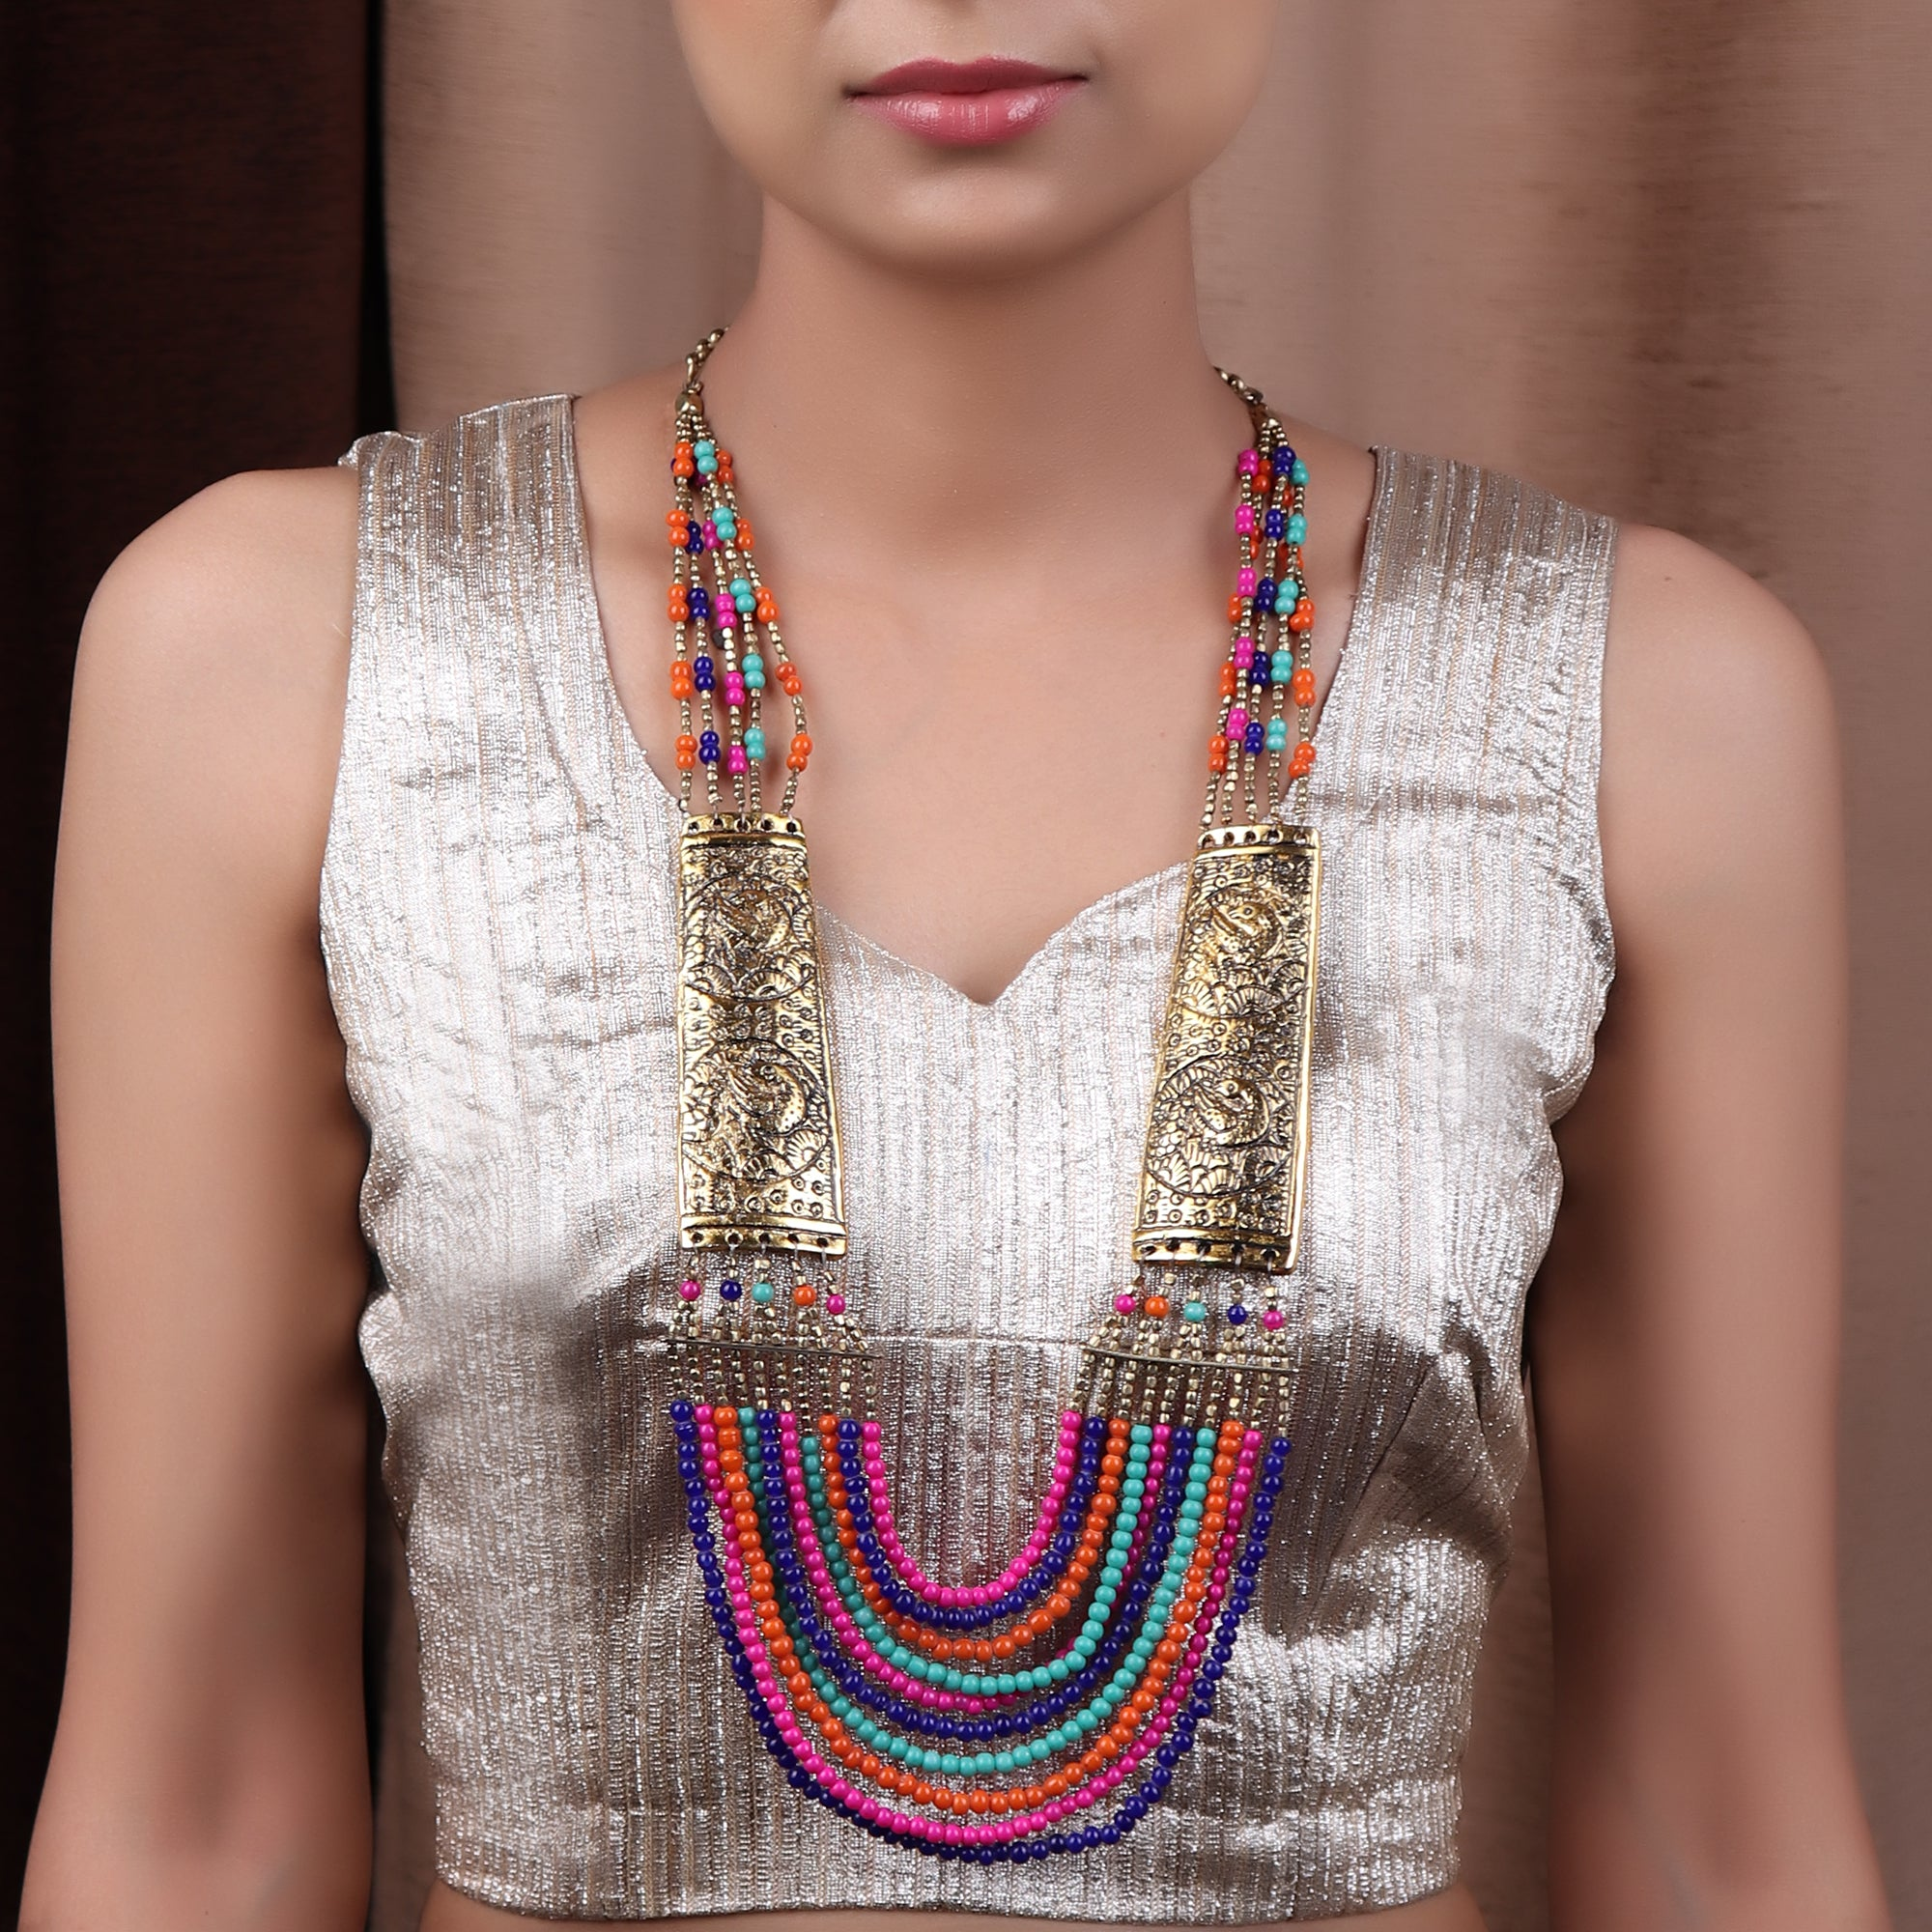 Multicolored Beaded Necklace with Golden Plates